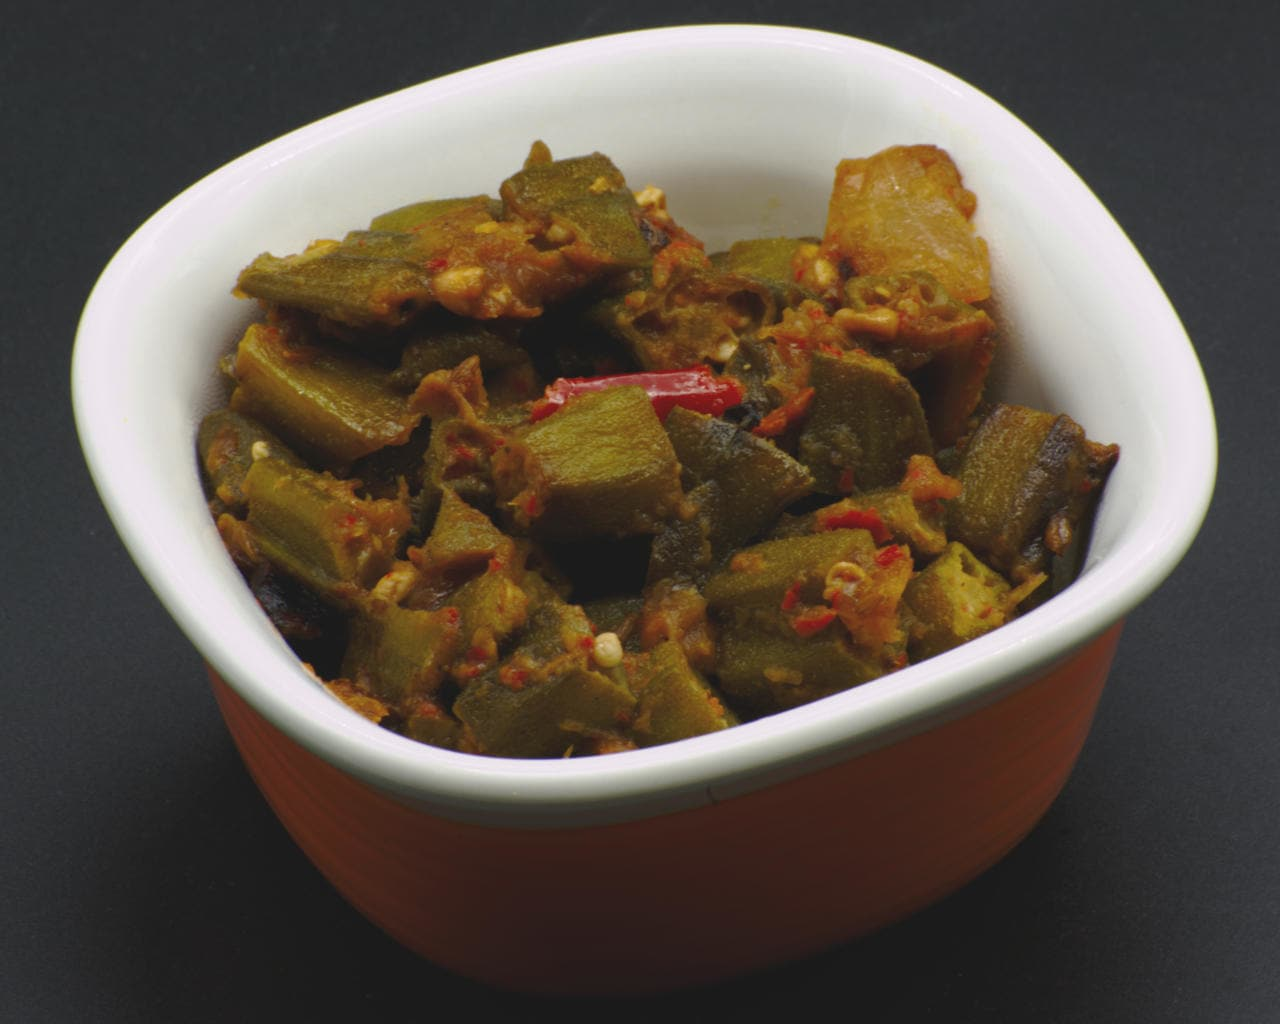 Stir-Fried Onion and Okra With South Indian Spices Image